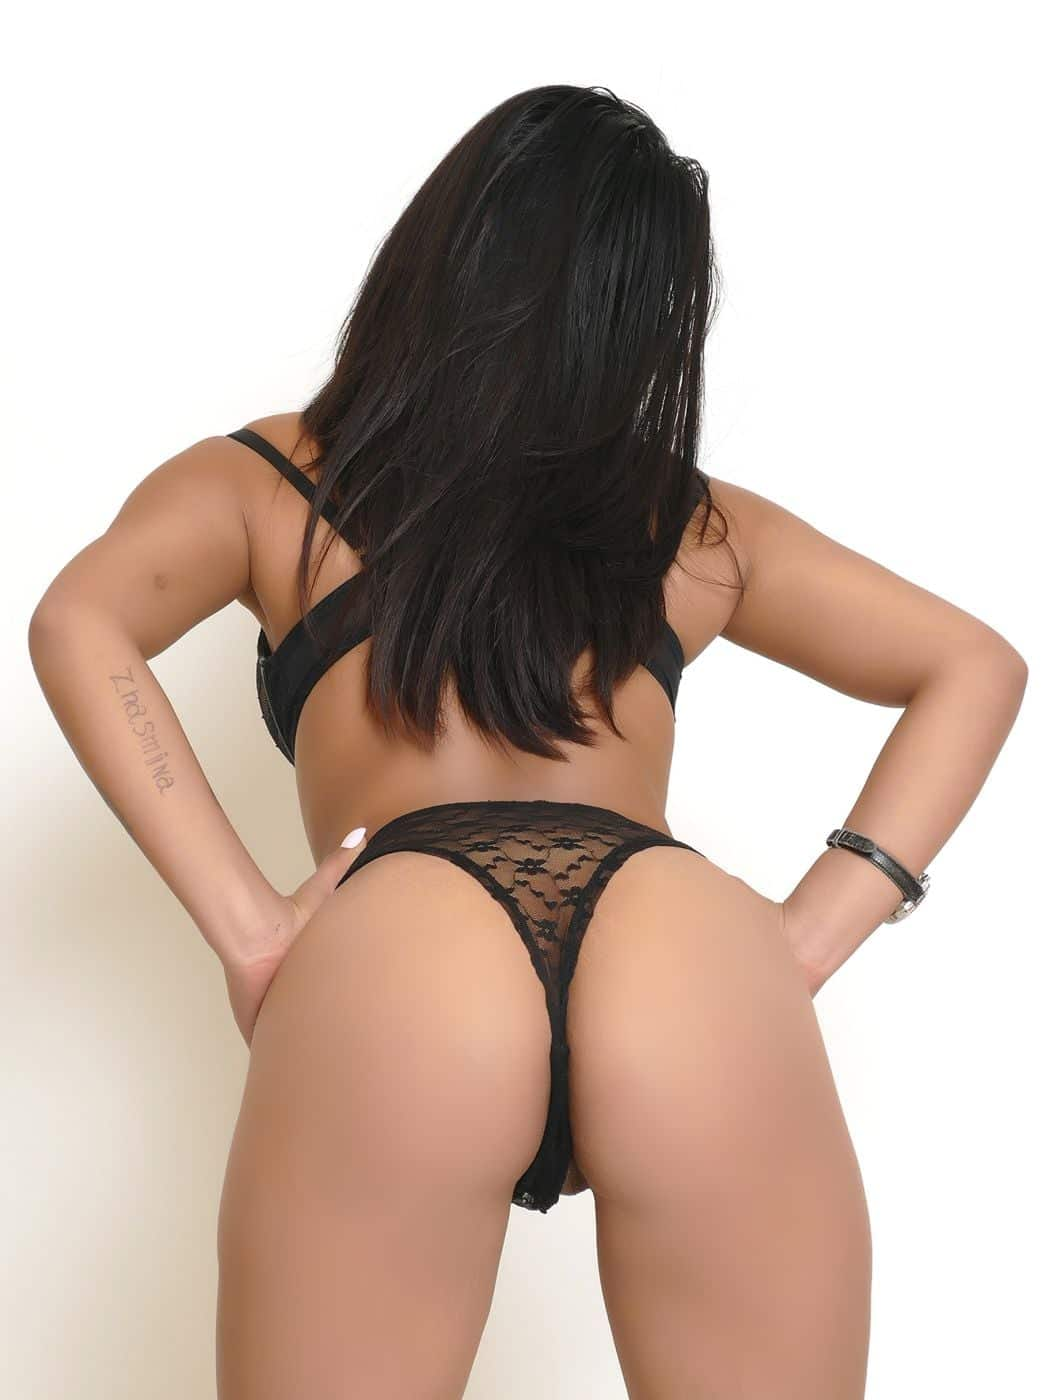 Privat Escortmodelle Berlin